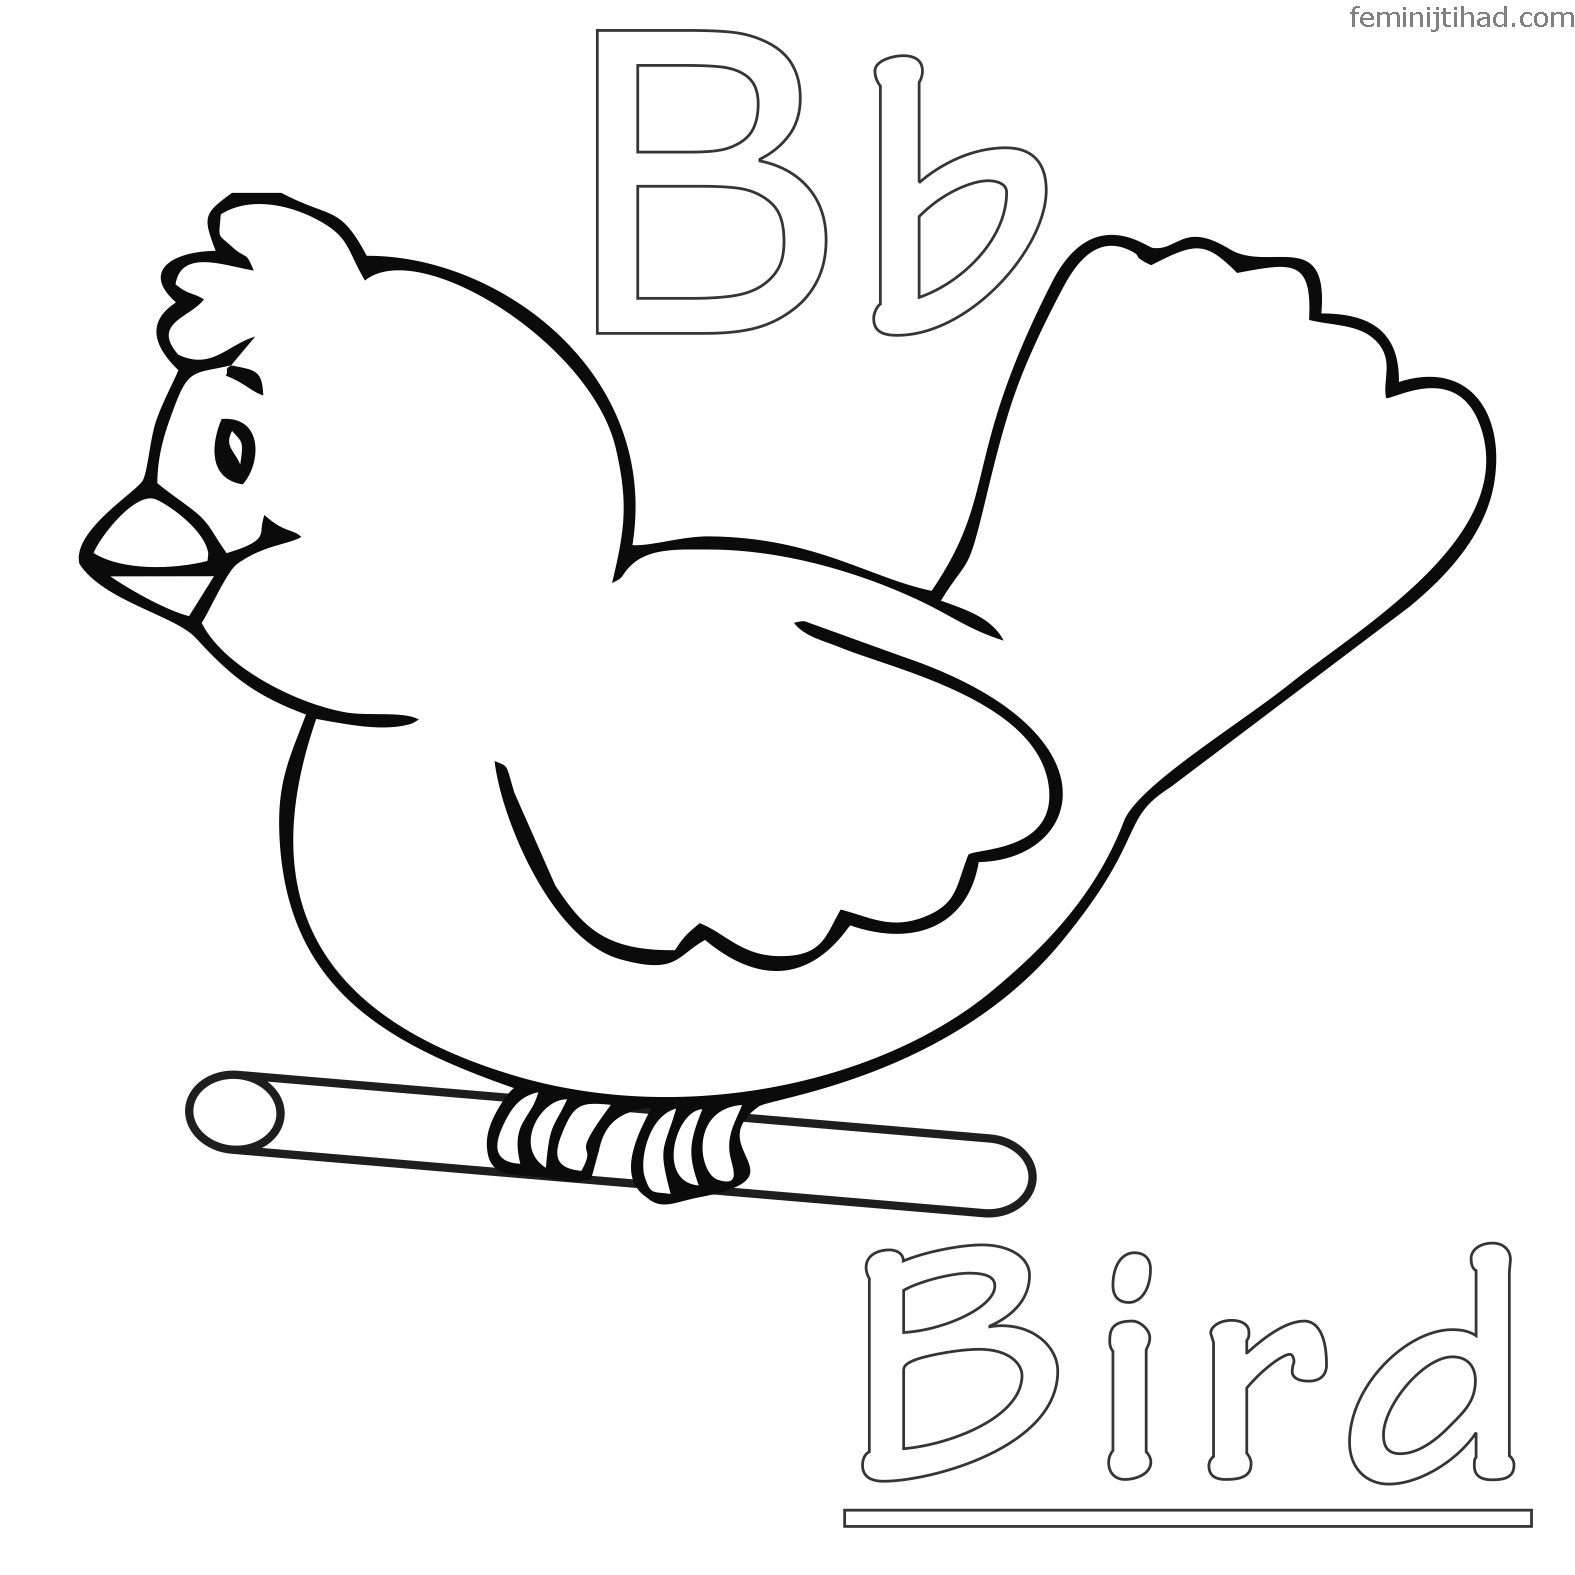 bird colouring pages for kids birds for children birds kids coloring pages bird pages kids for colouring